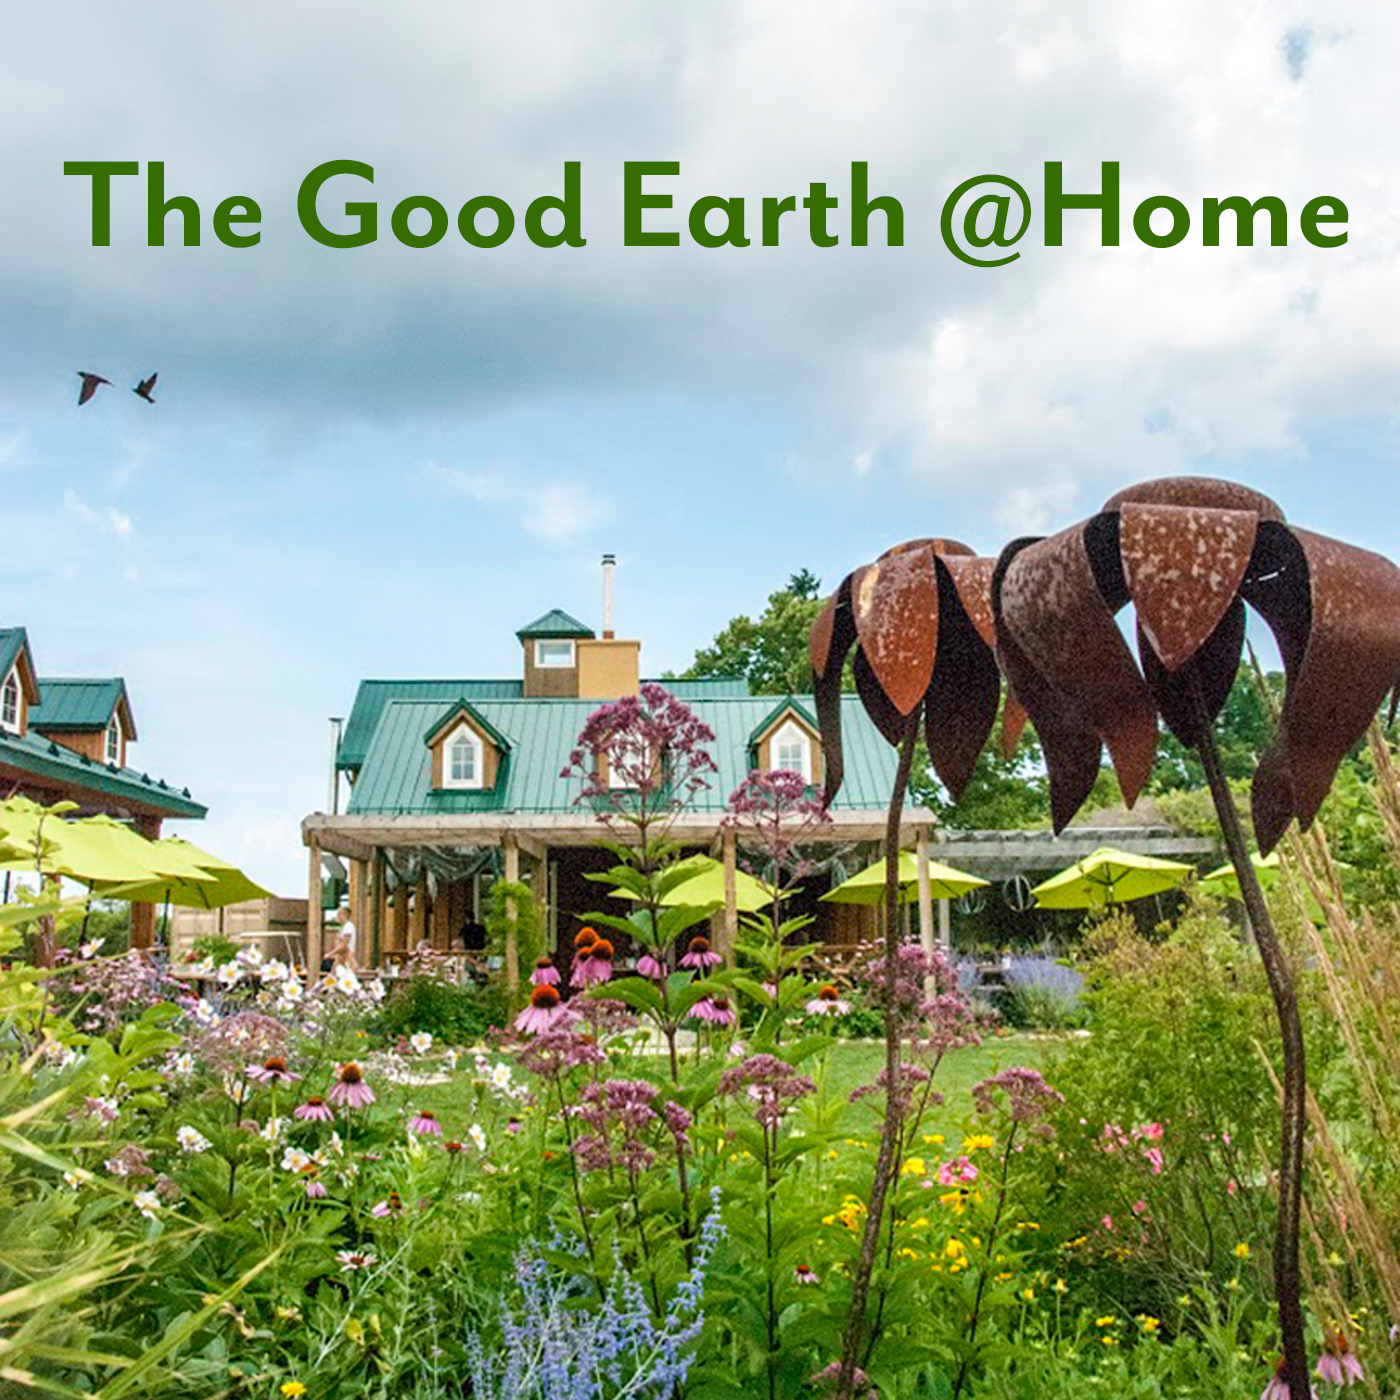 The Good Earth at home